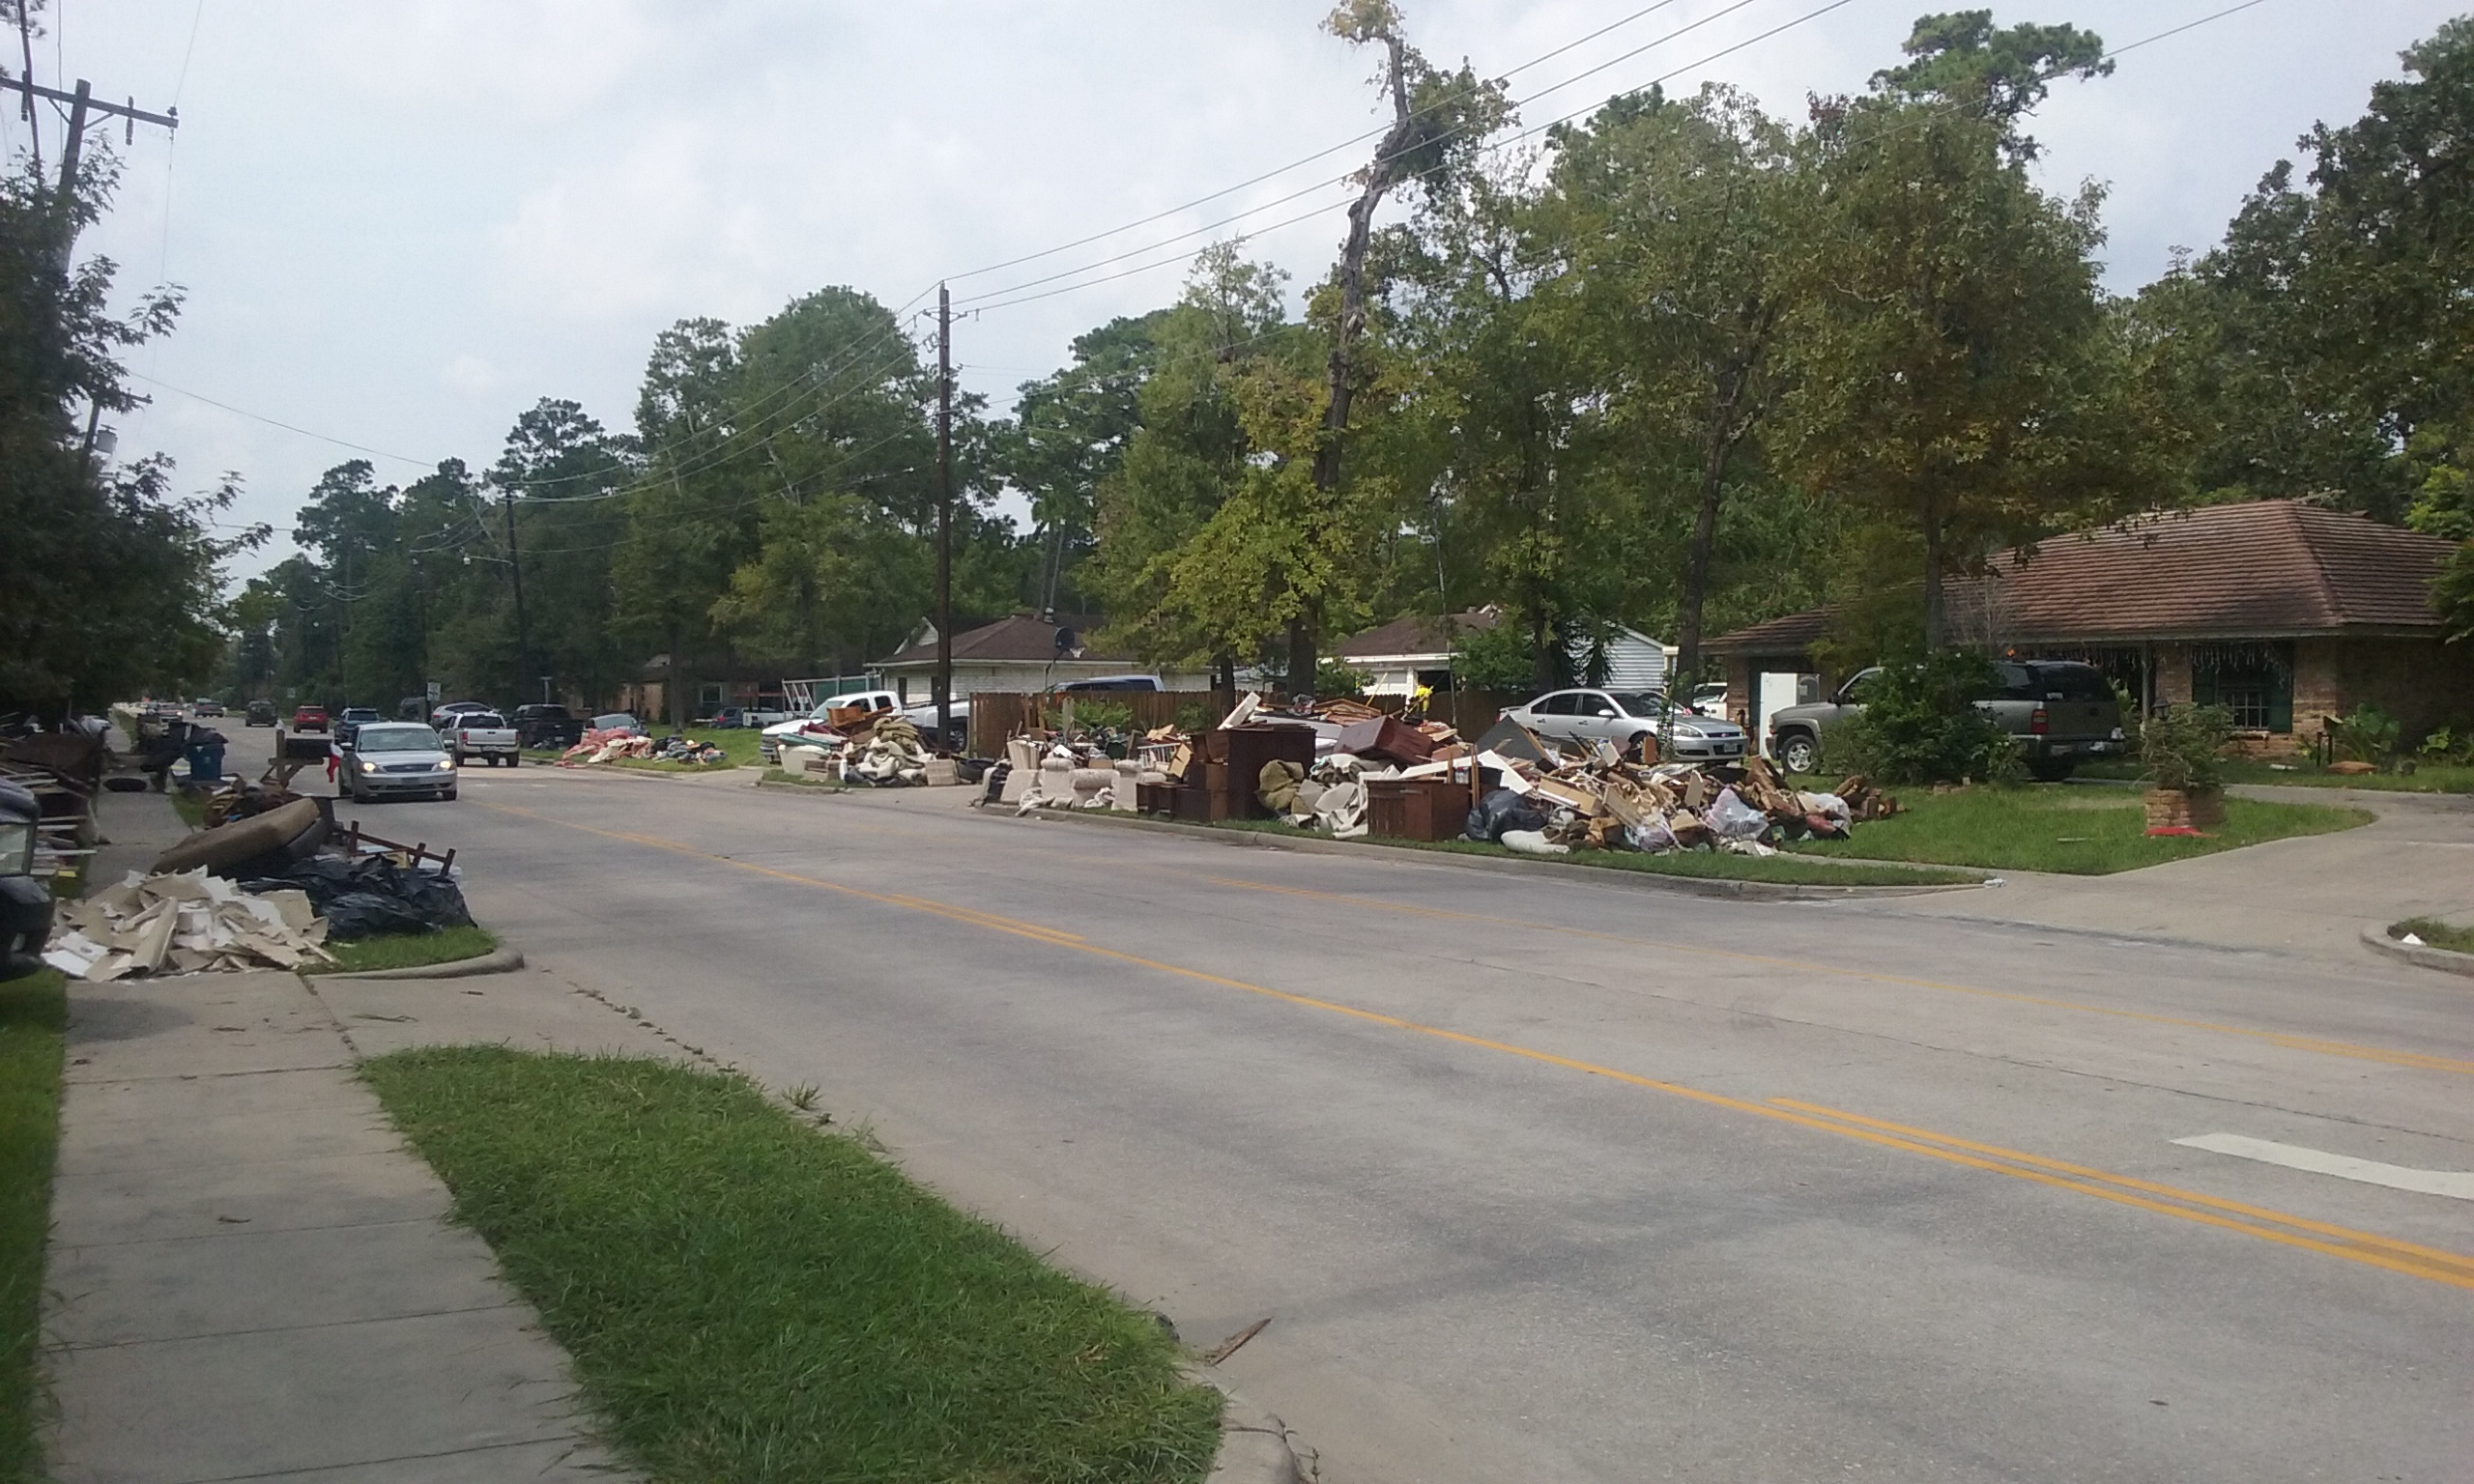 Photo of a suburban street with small houses. All the yards are covered in furniture and trash from gutting houses after Hurricane Harvey